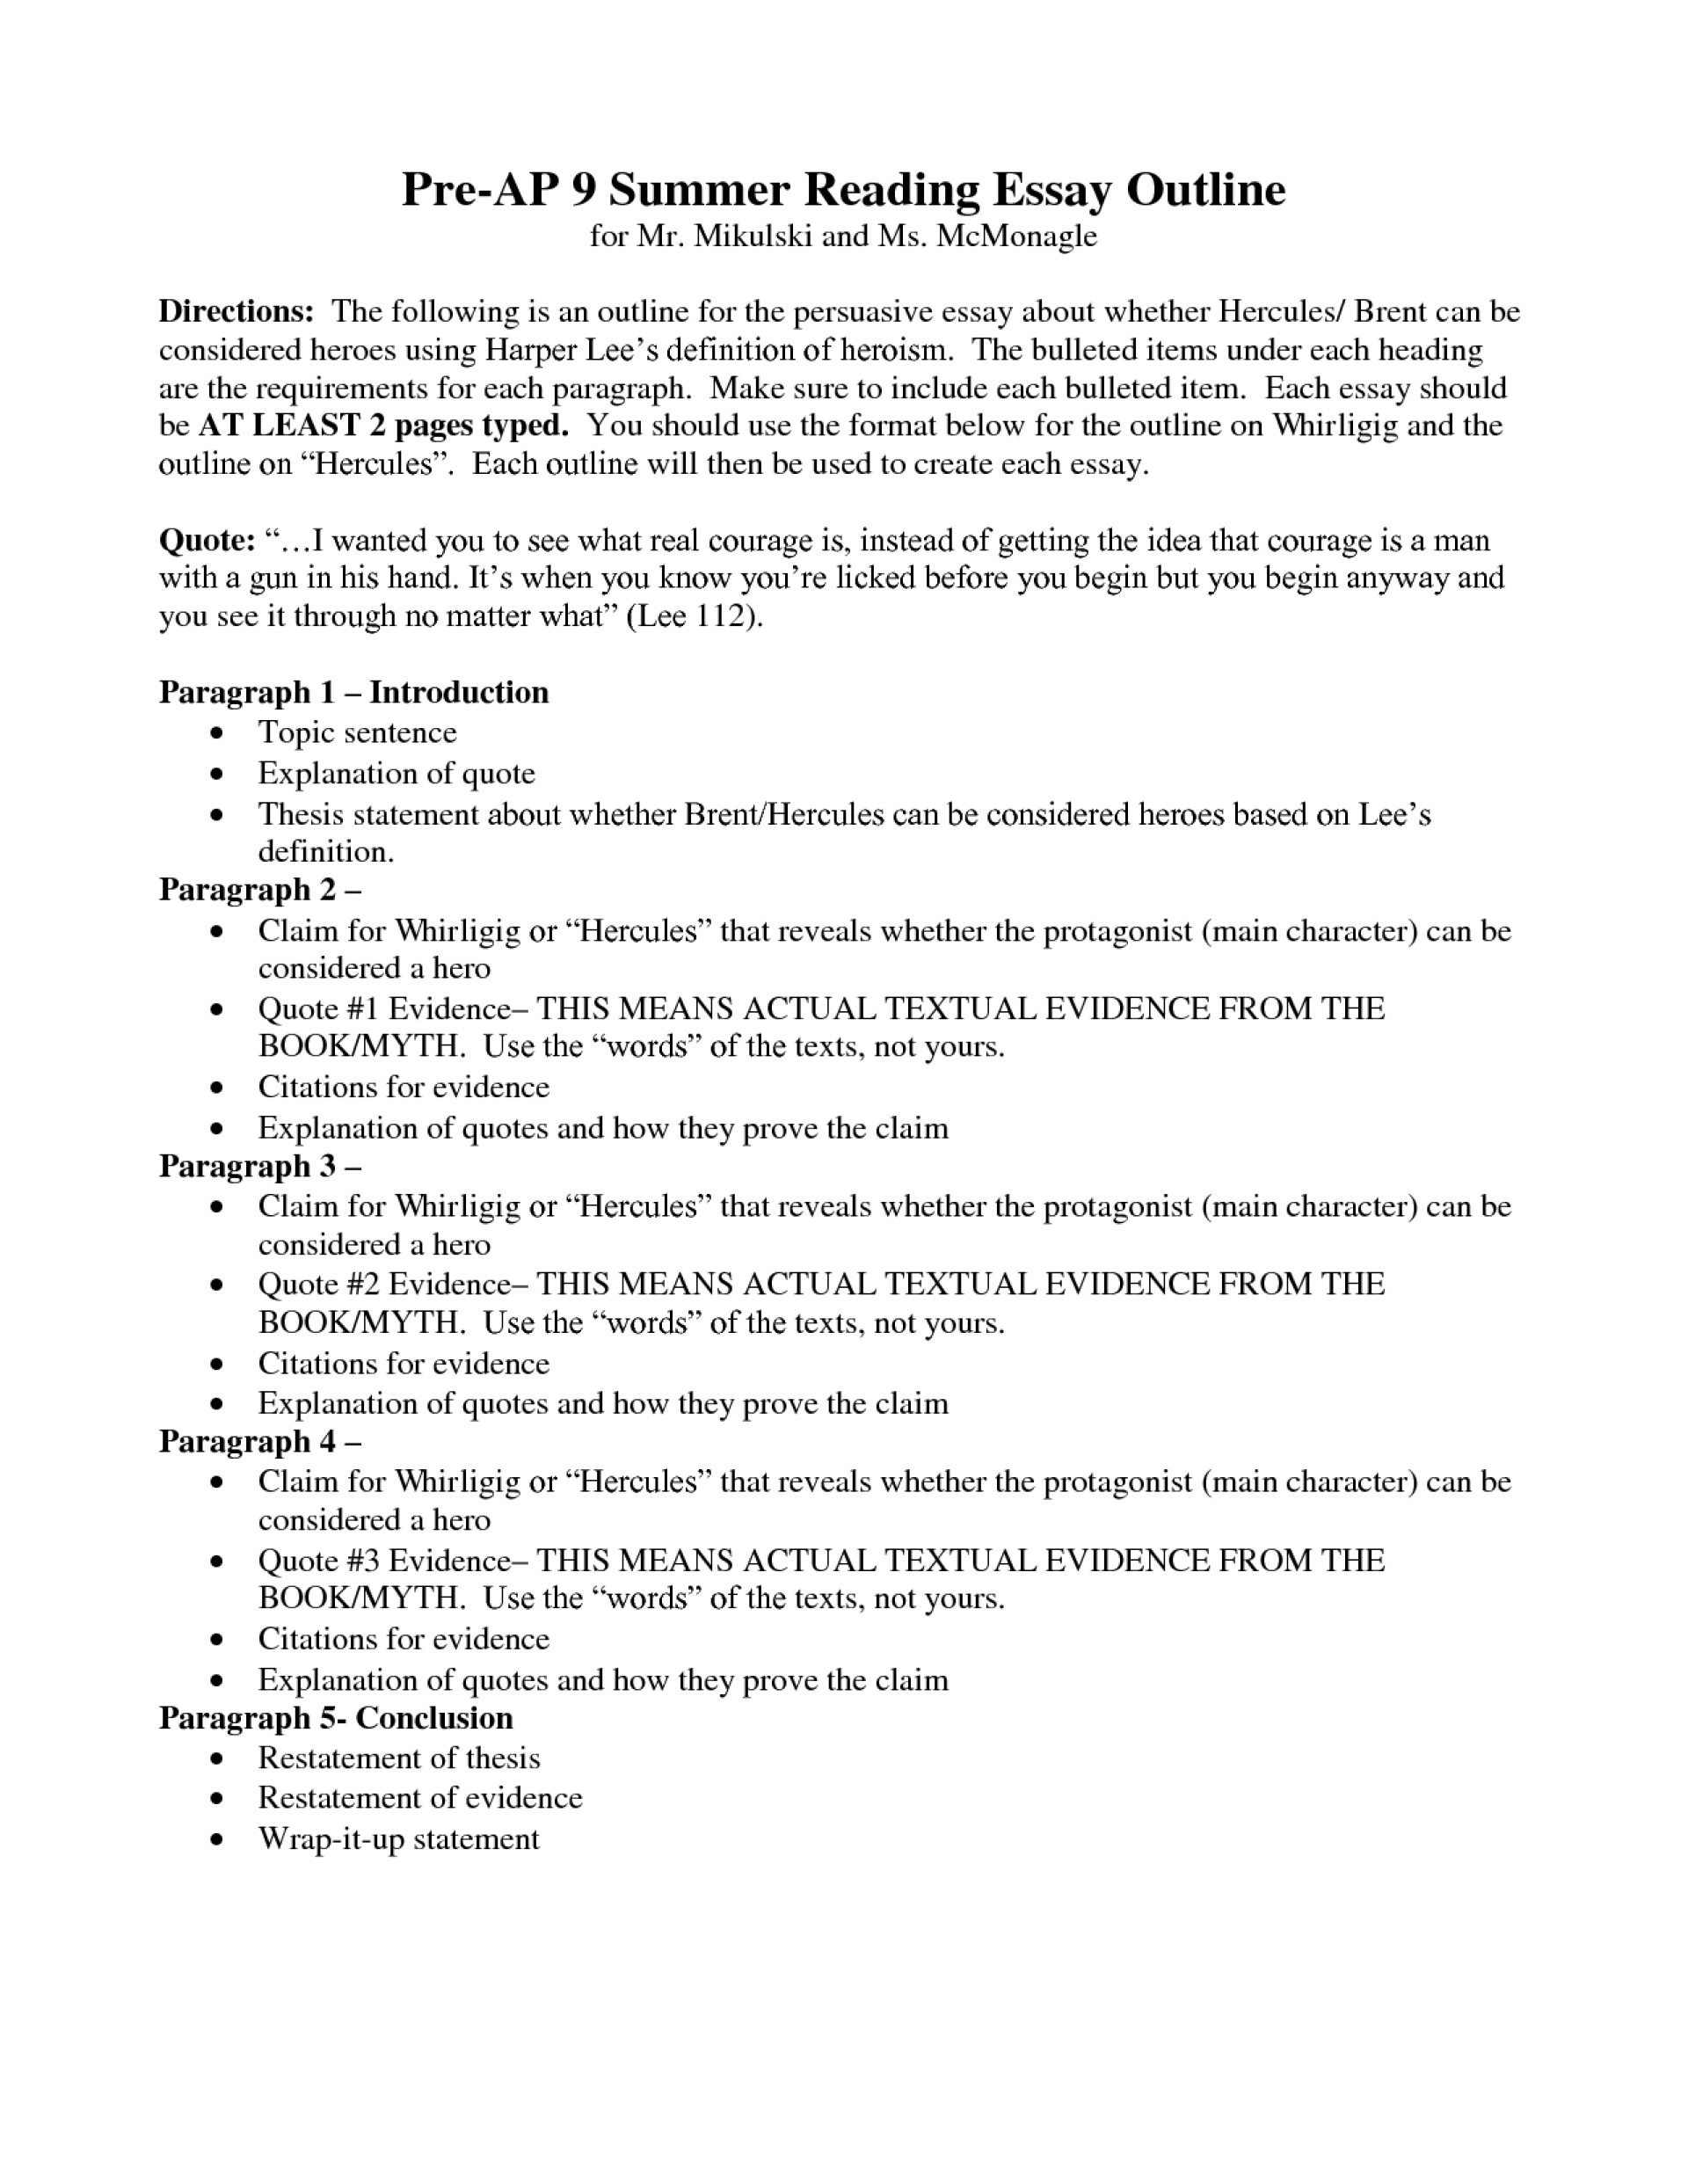 018 Essay Example Writing Definition About Heroism Essays Sample Format Of Freedom On Happiness Success Topics Love Family Respect Extended Friendship How To Awesome Write A Introduction Conclusion Paragraph For Outline 1920